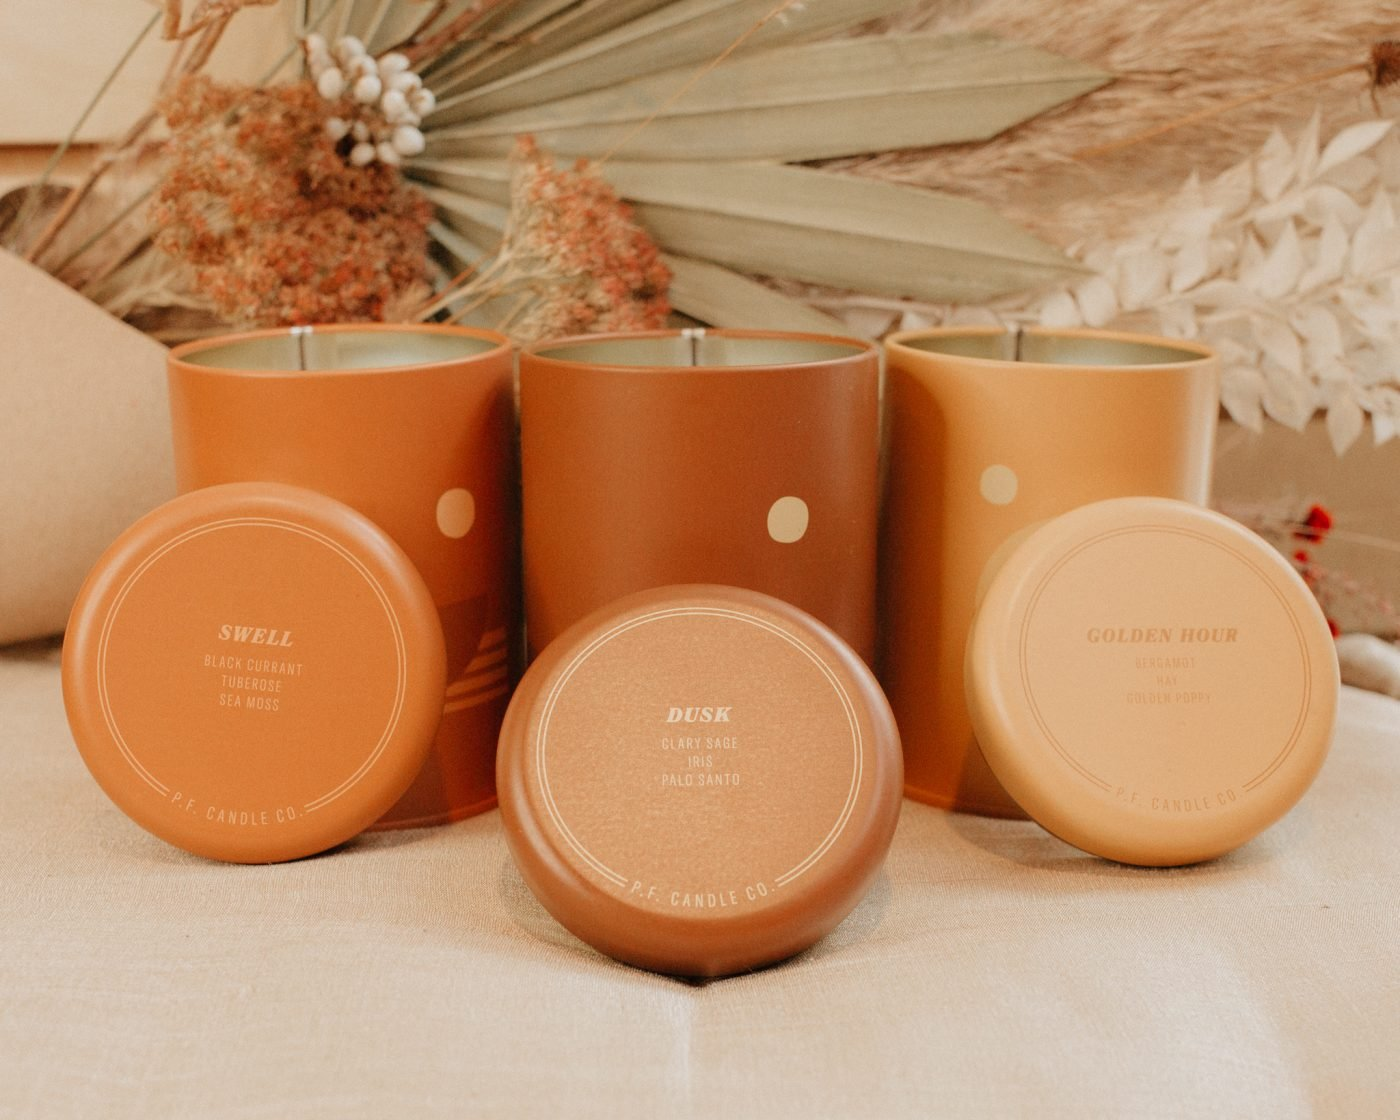 3 Sunset Soy Candles from PF Candle Co